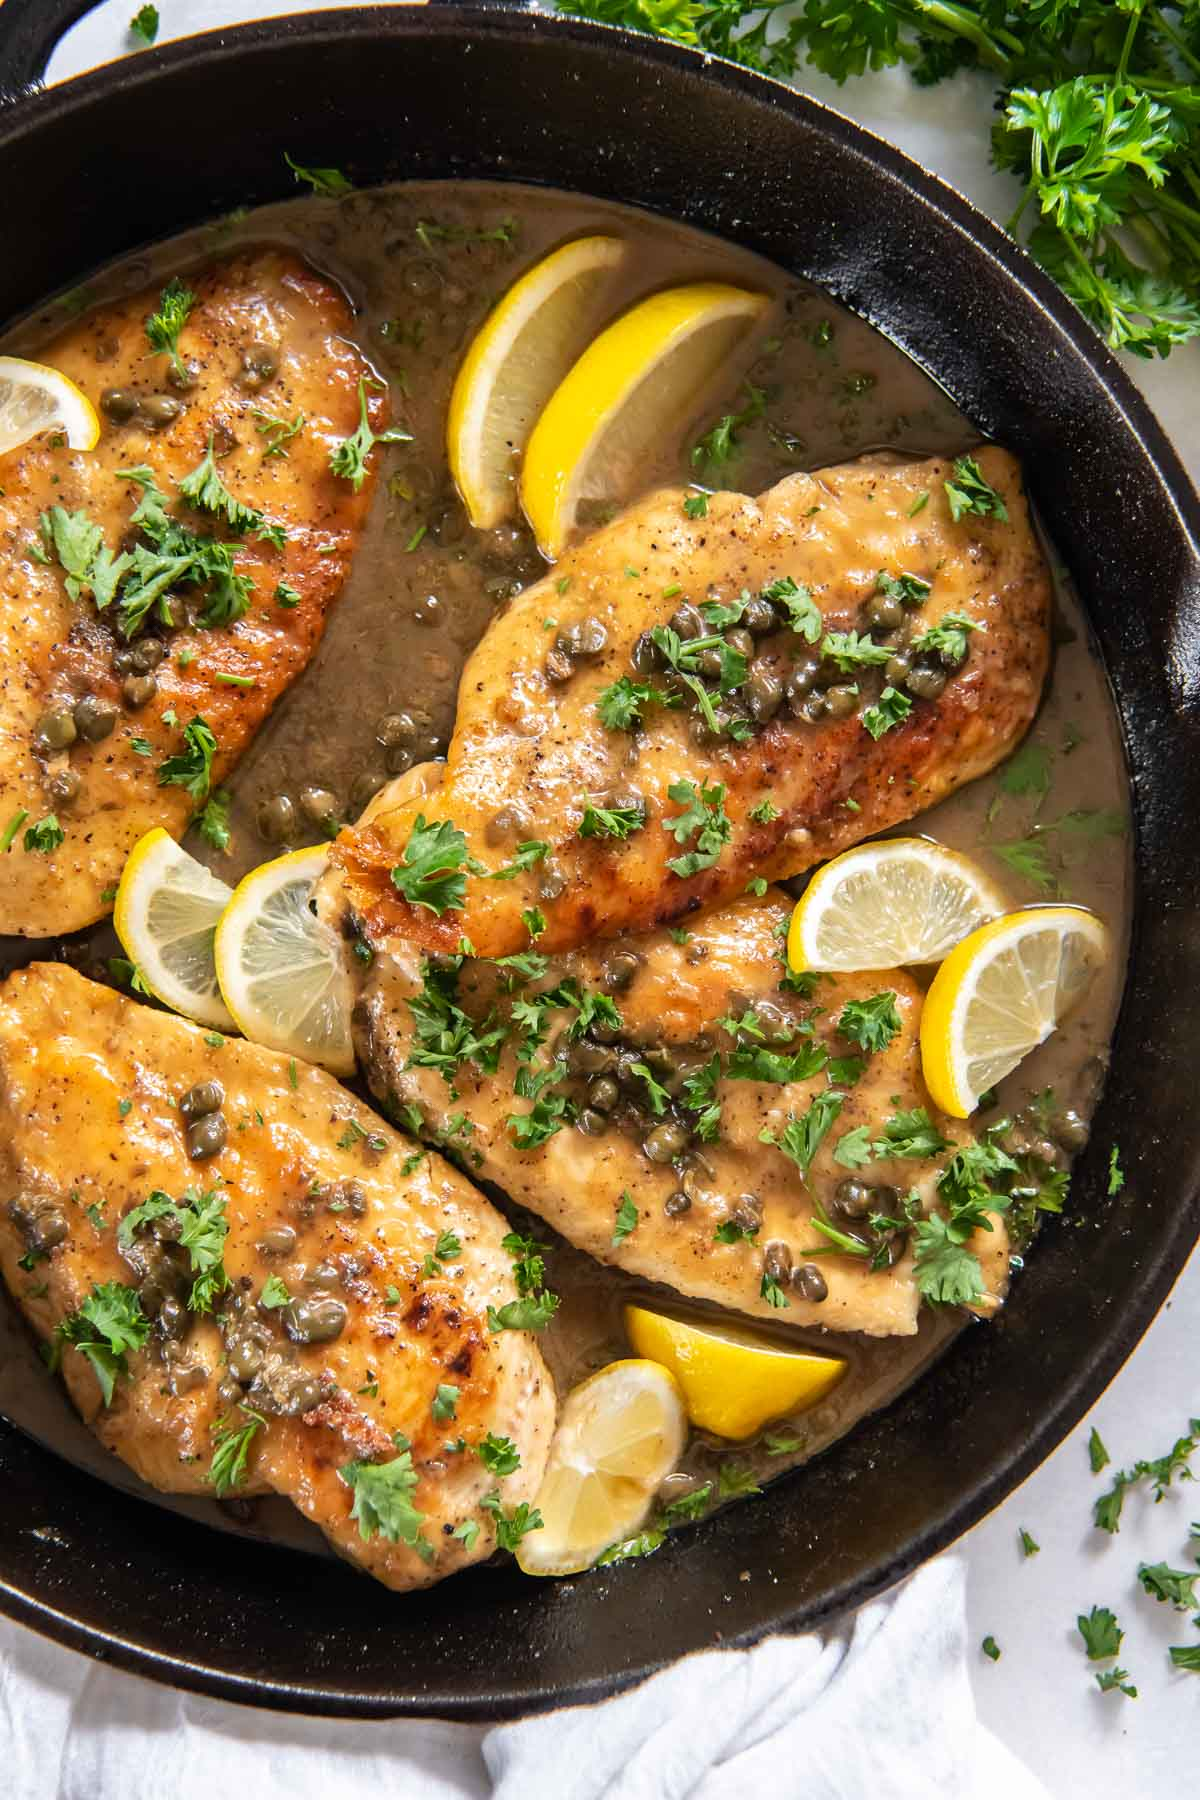 chicken piccata with fresh parsley and lemon slices in a cast iron skillet